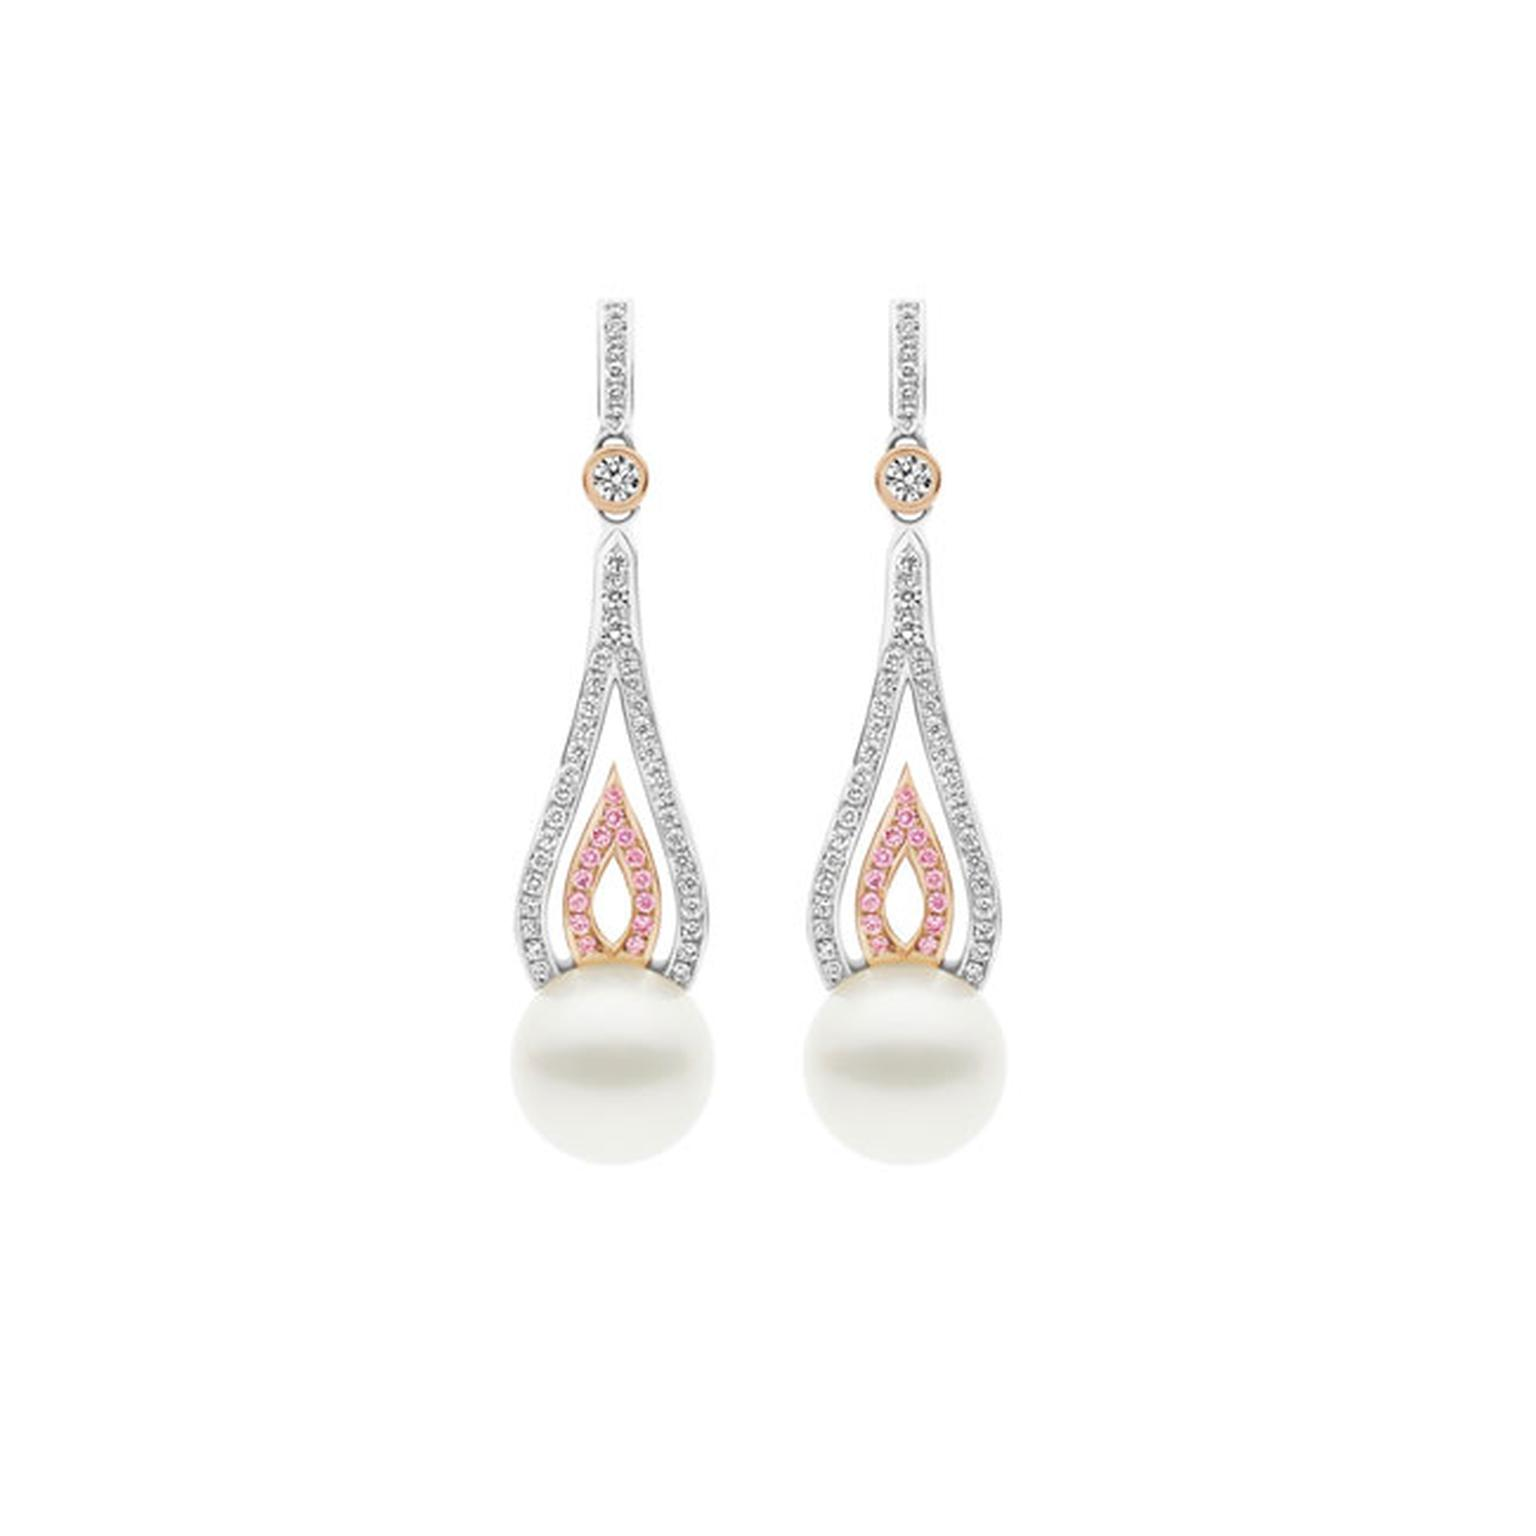 Kailis flame earrings with pearls and white and pink pavé diamonds_main